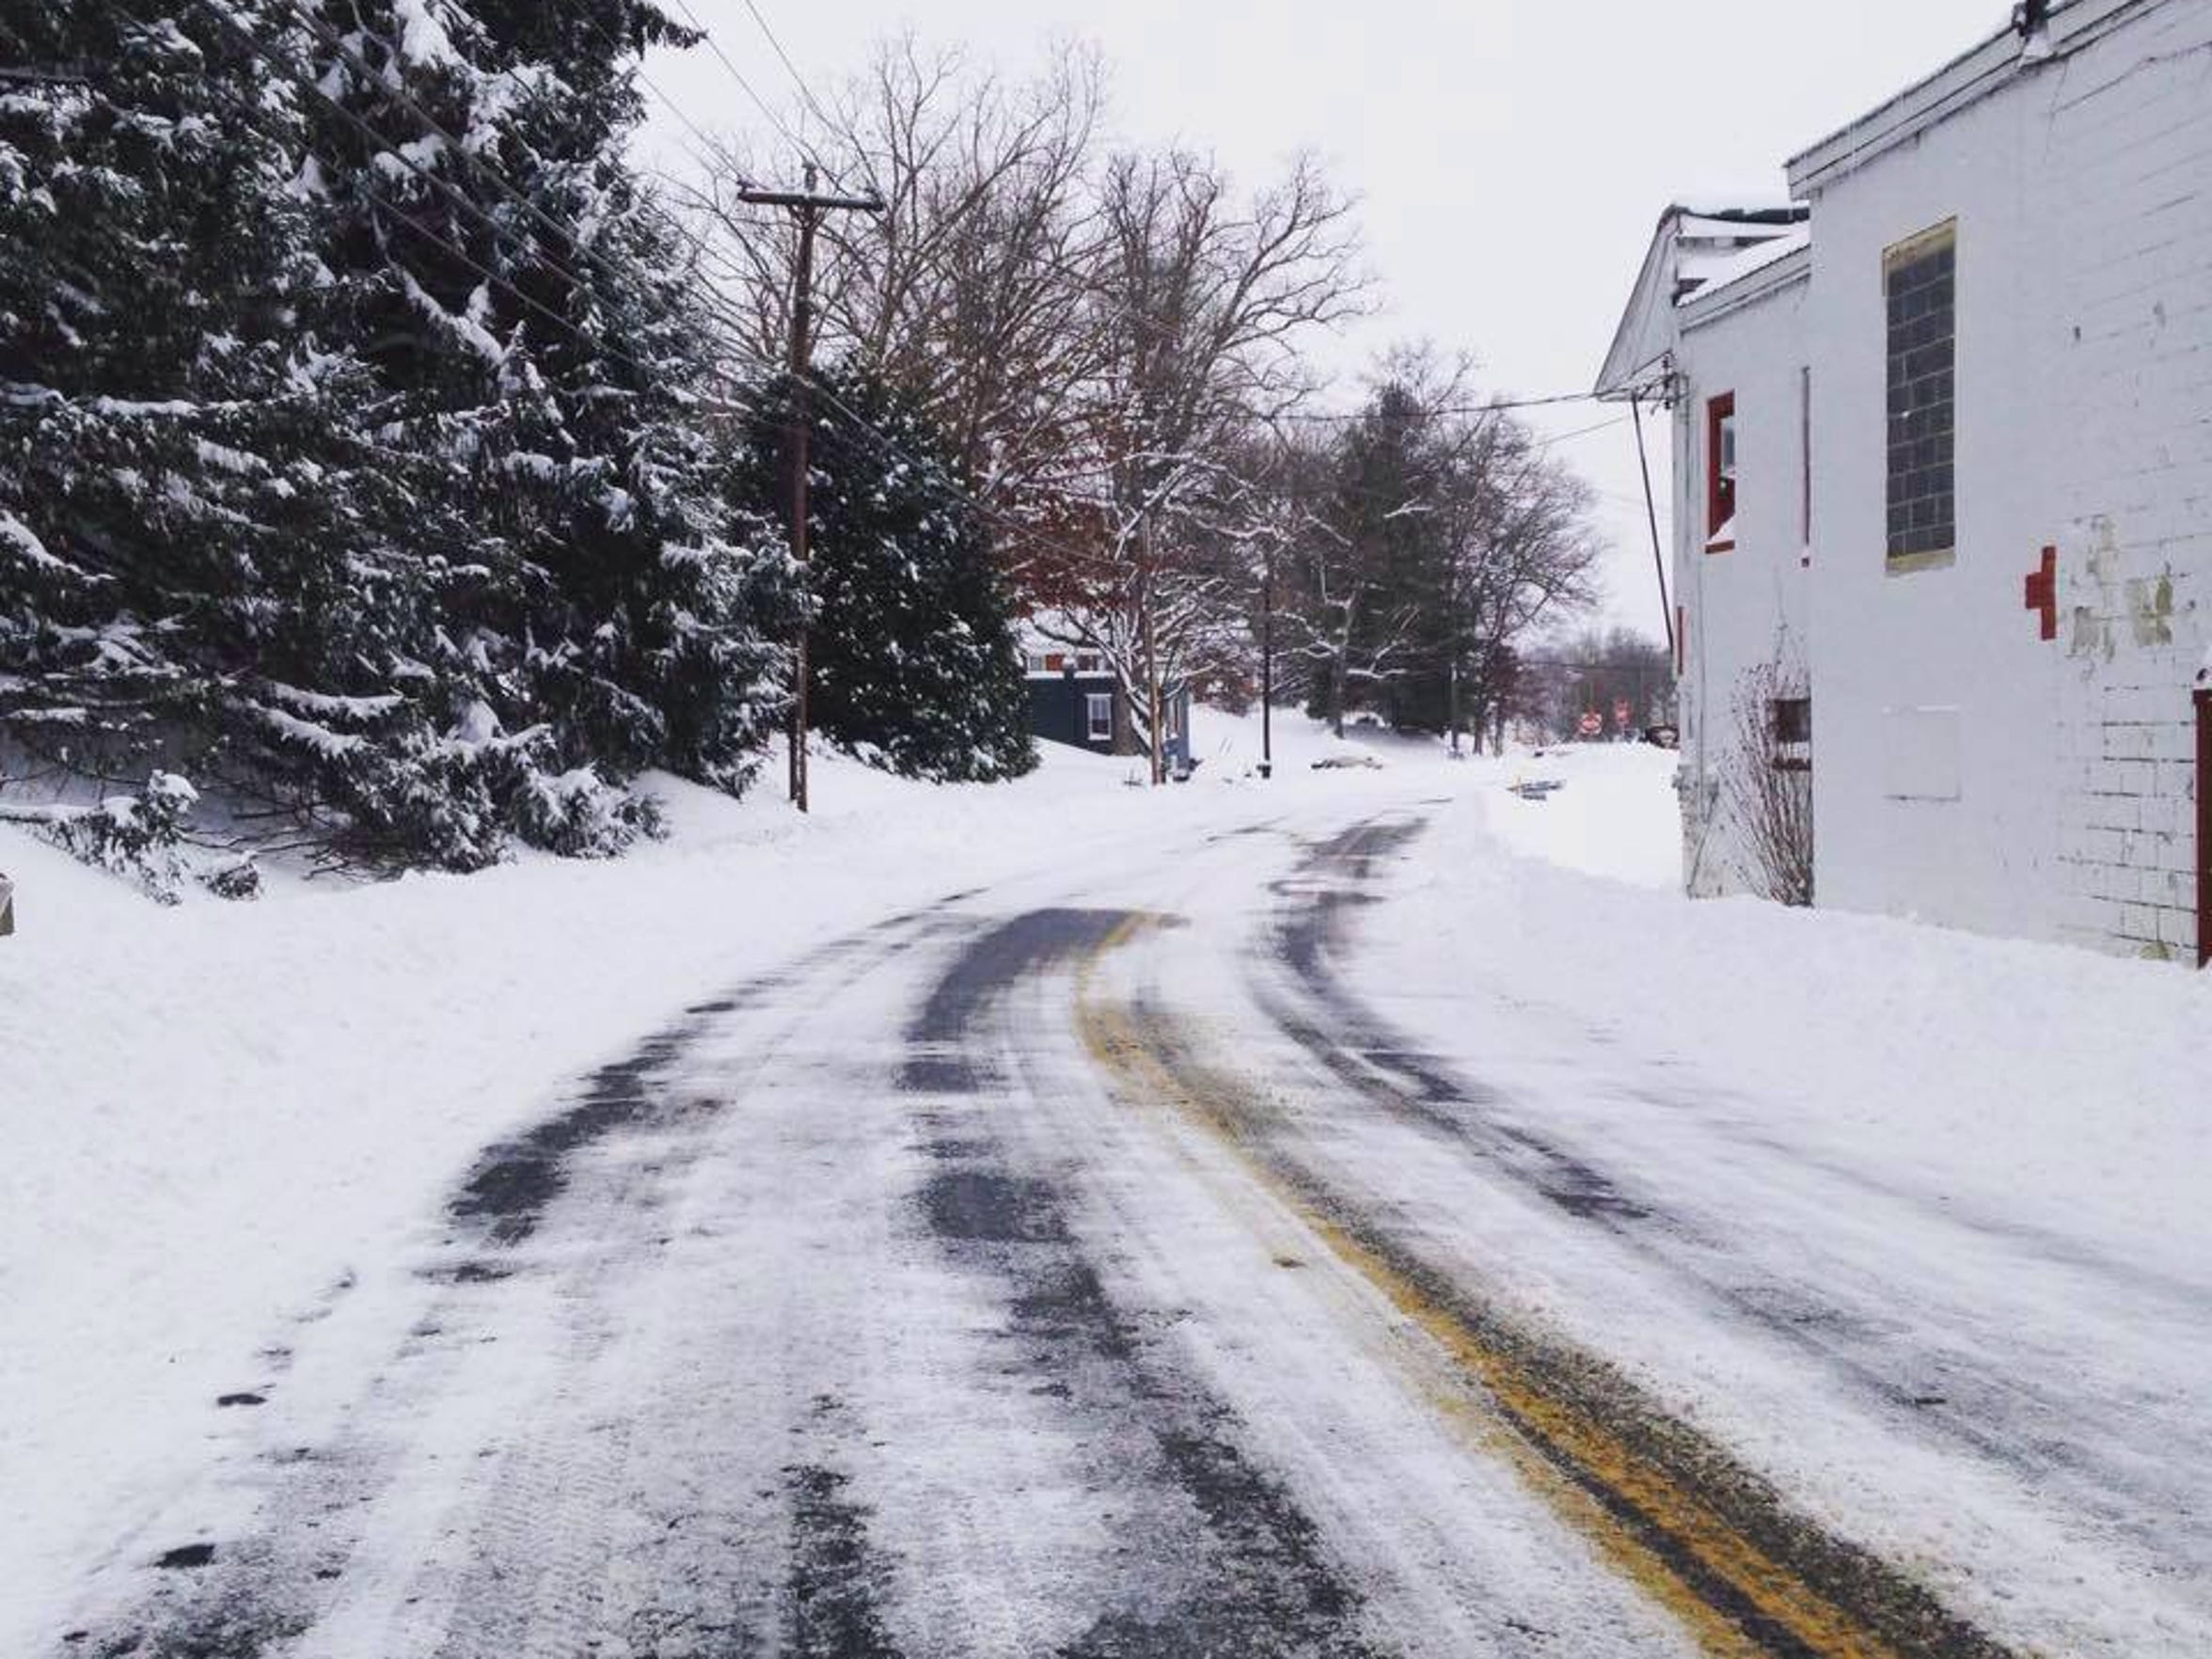 A snowy road in Staunton during Winter Storm Jonas in late January.